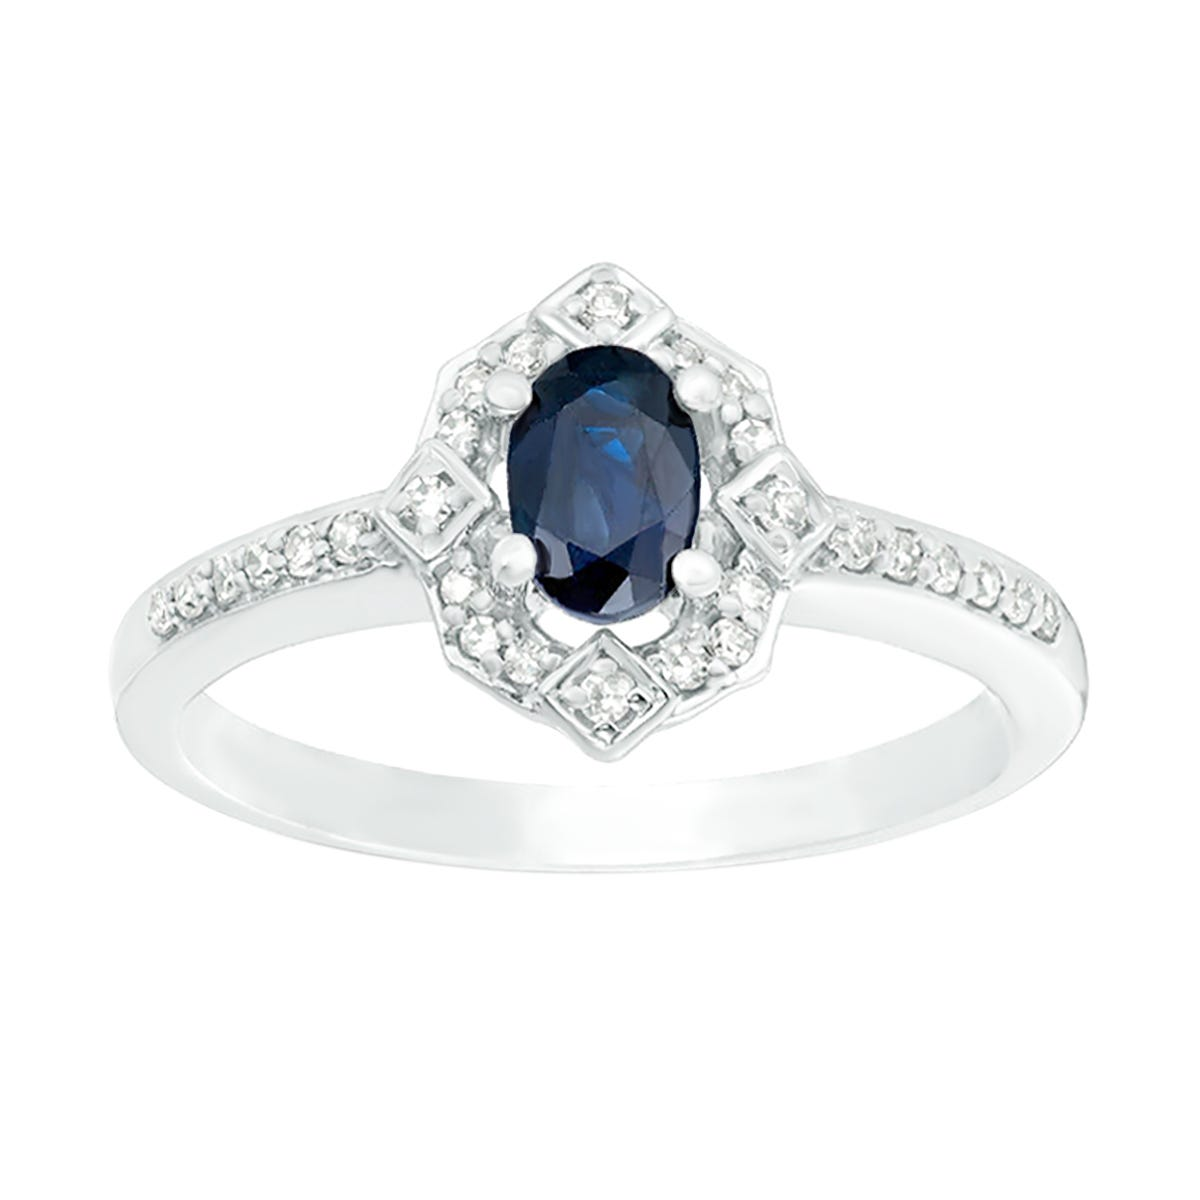 Oval Sapphire and Diamond Ring 1/8ctw in 10k White Gold